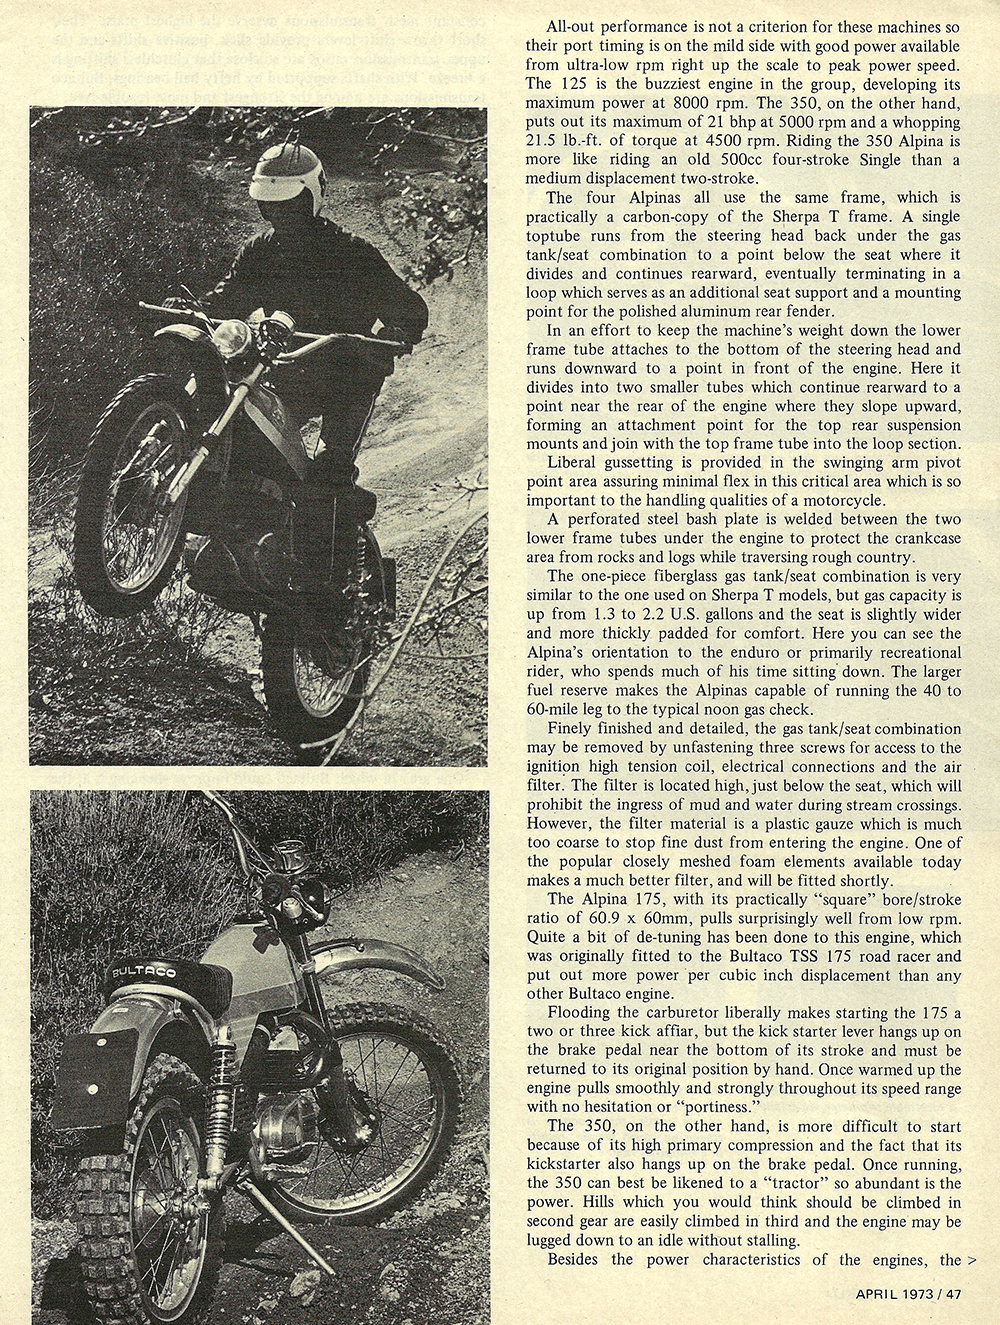 1973 Bultaco Alpina 175 350 road test 04.jpg